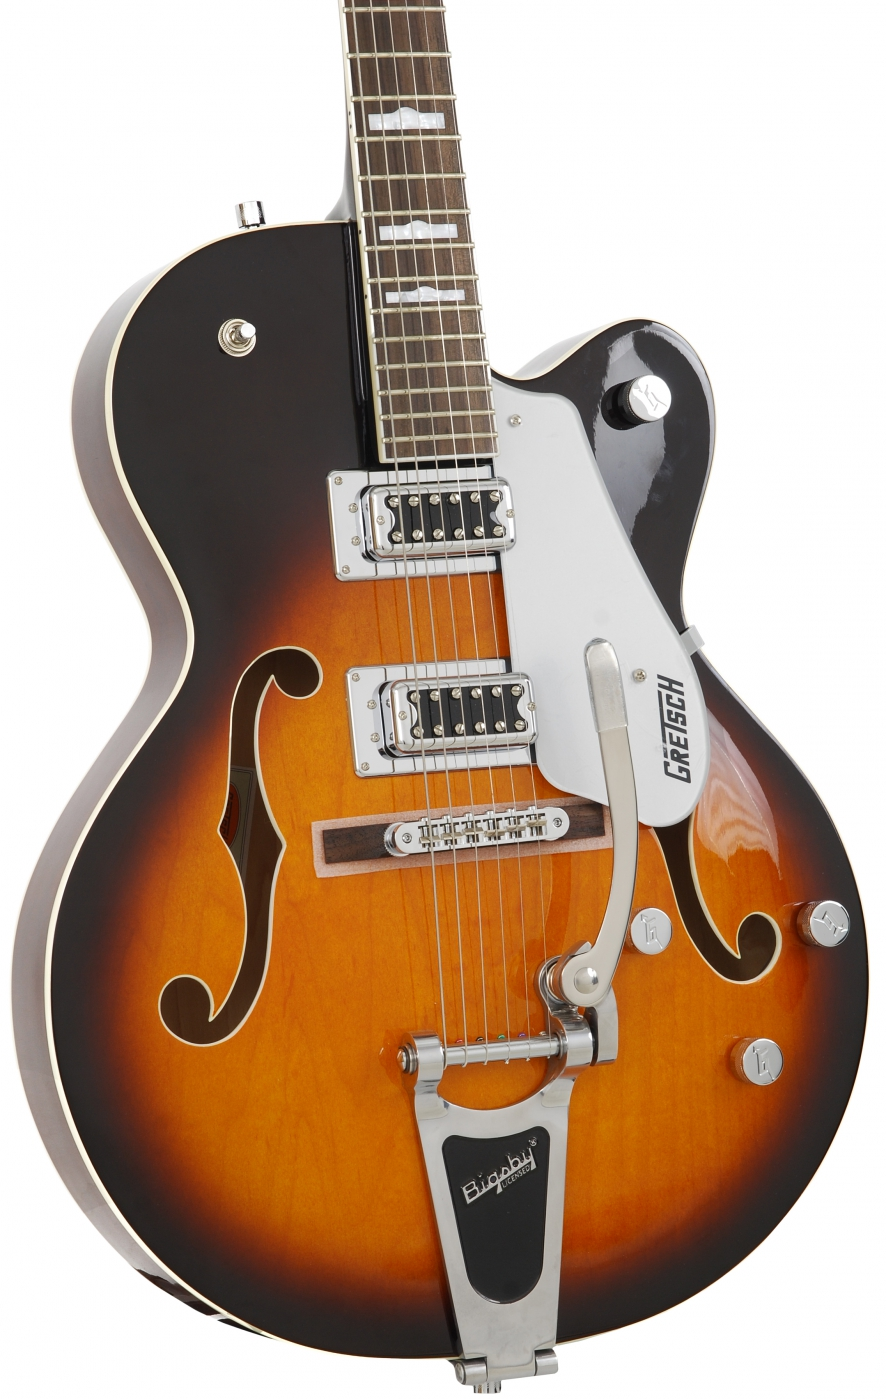 gretsch g5420t electromatic hollow body electric guitar. Black Bedroom Furniture Sets. Home Design Ideas